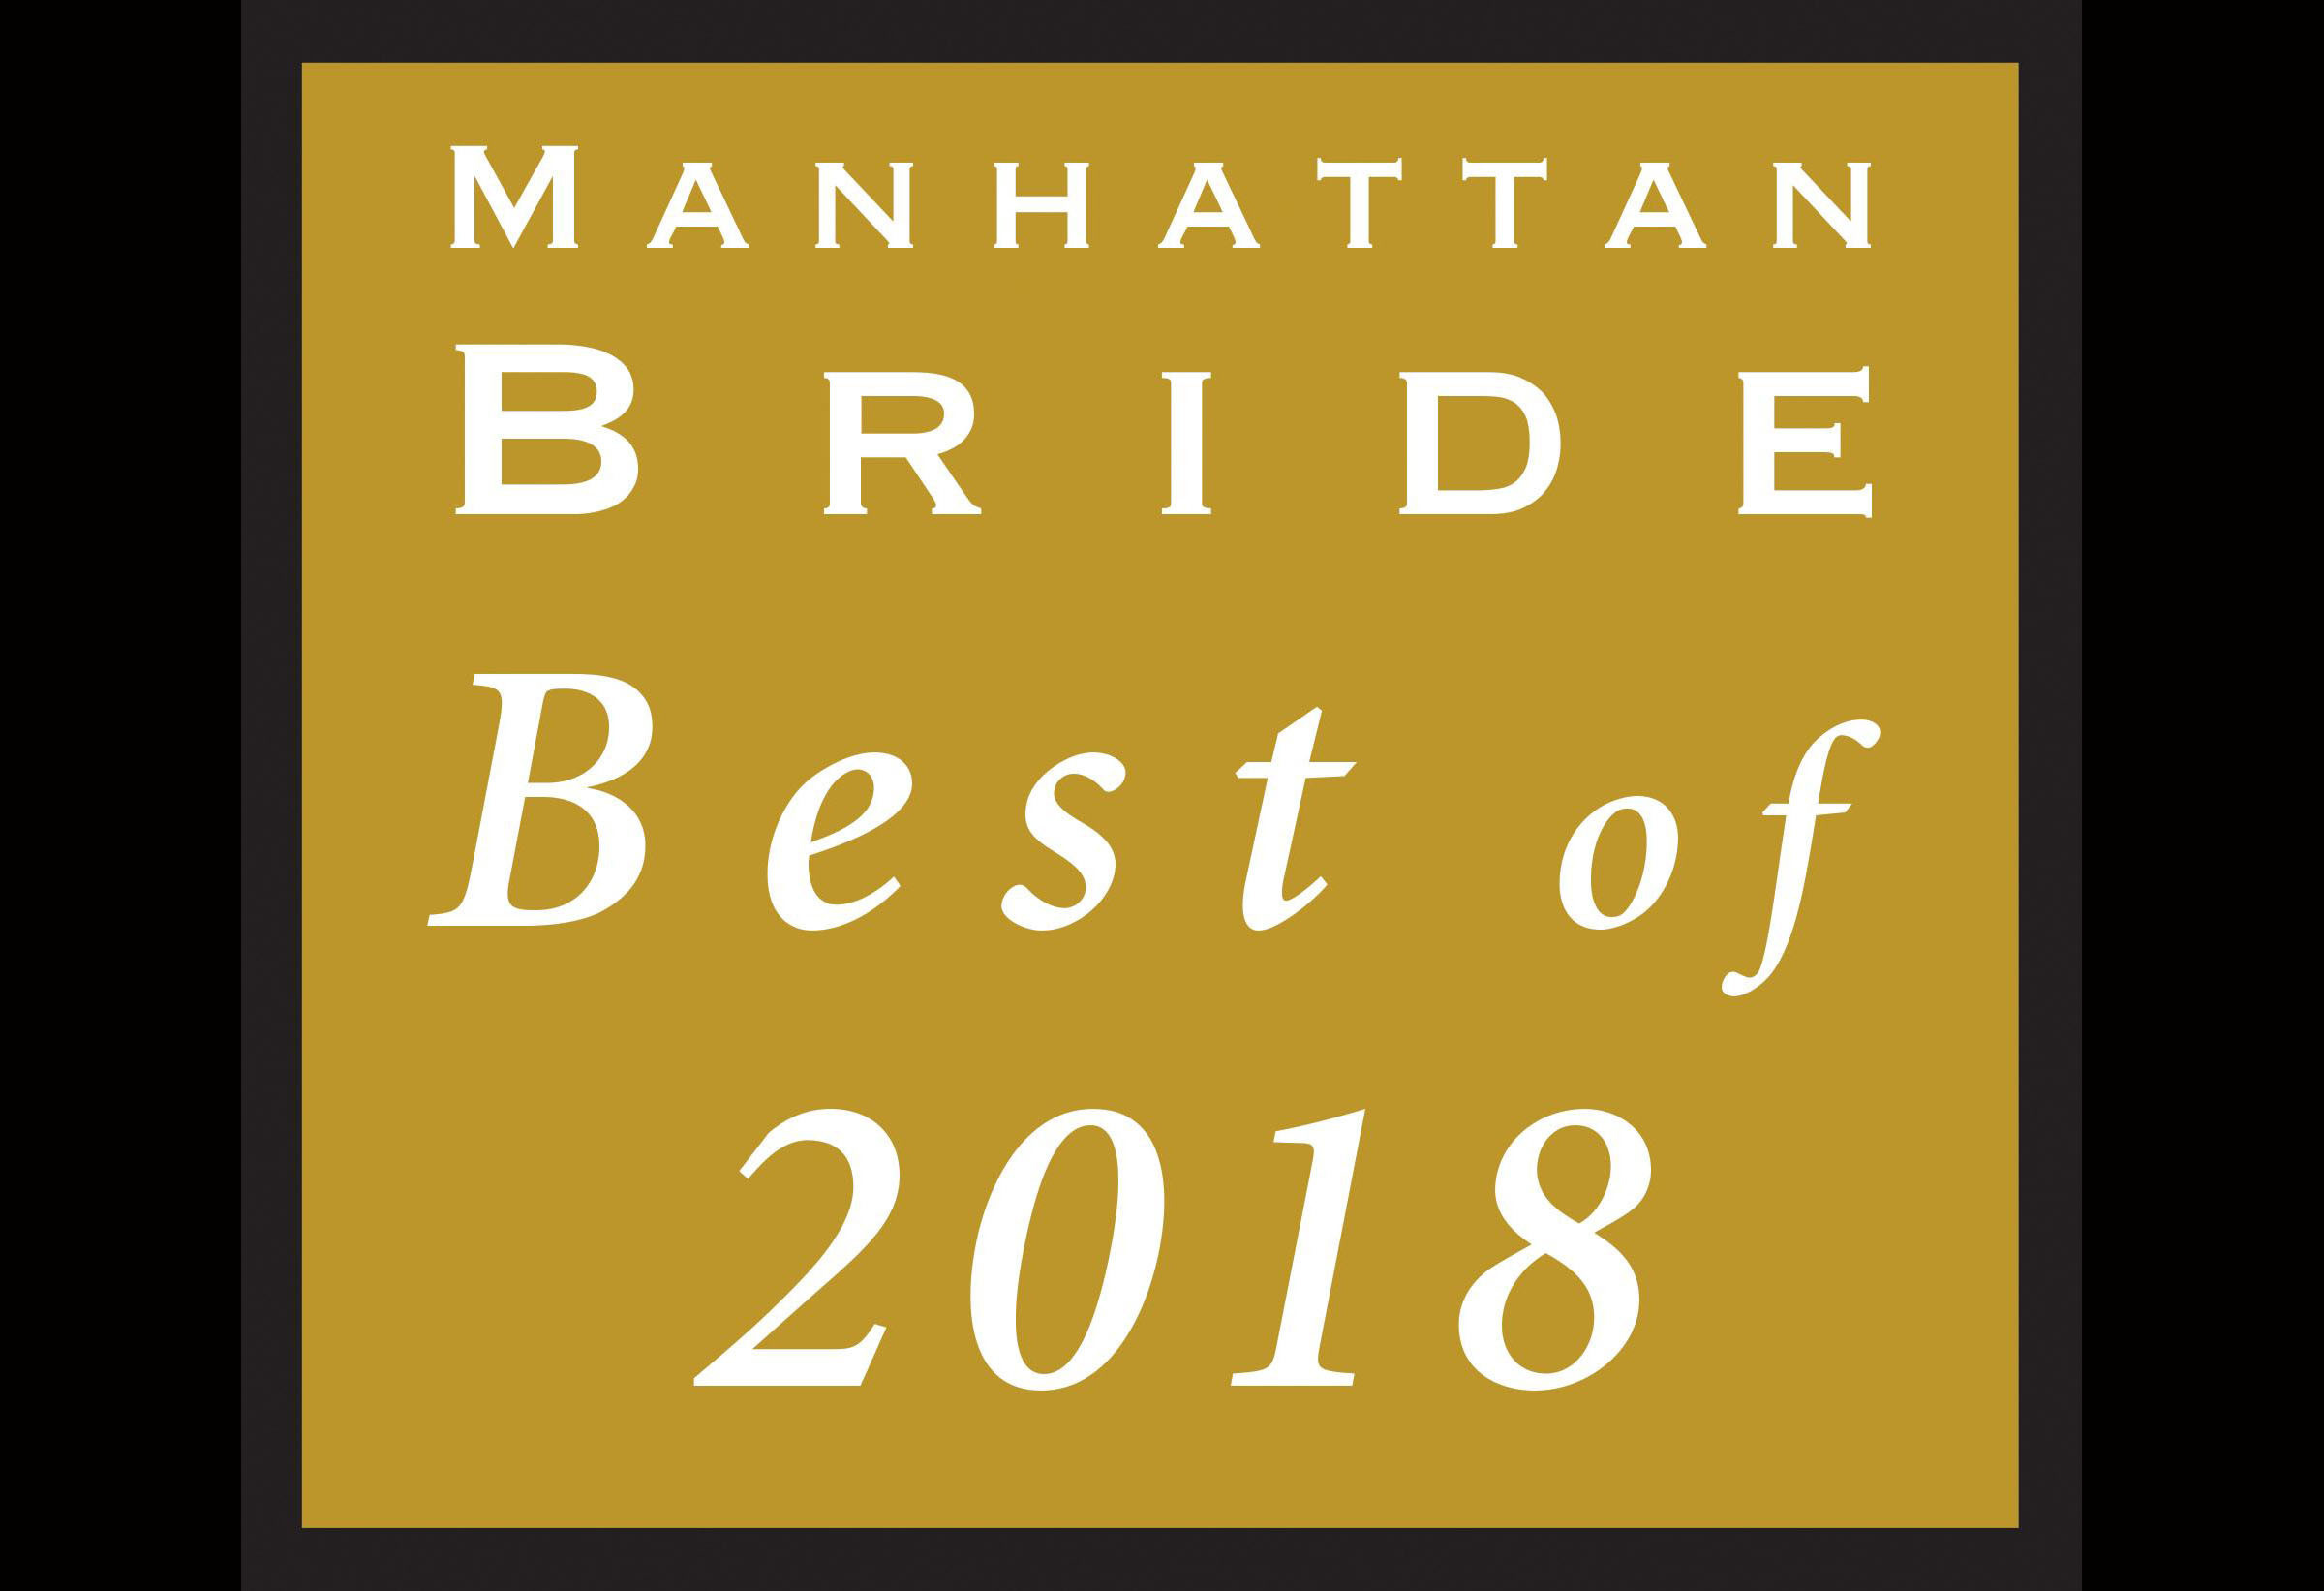 M&V Limousine named one of the Manhattan Bride's BEST OF 2018